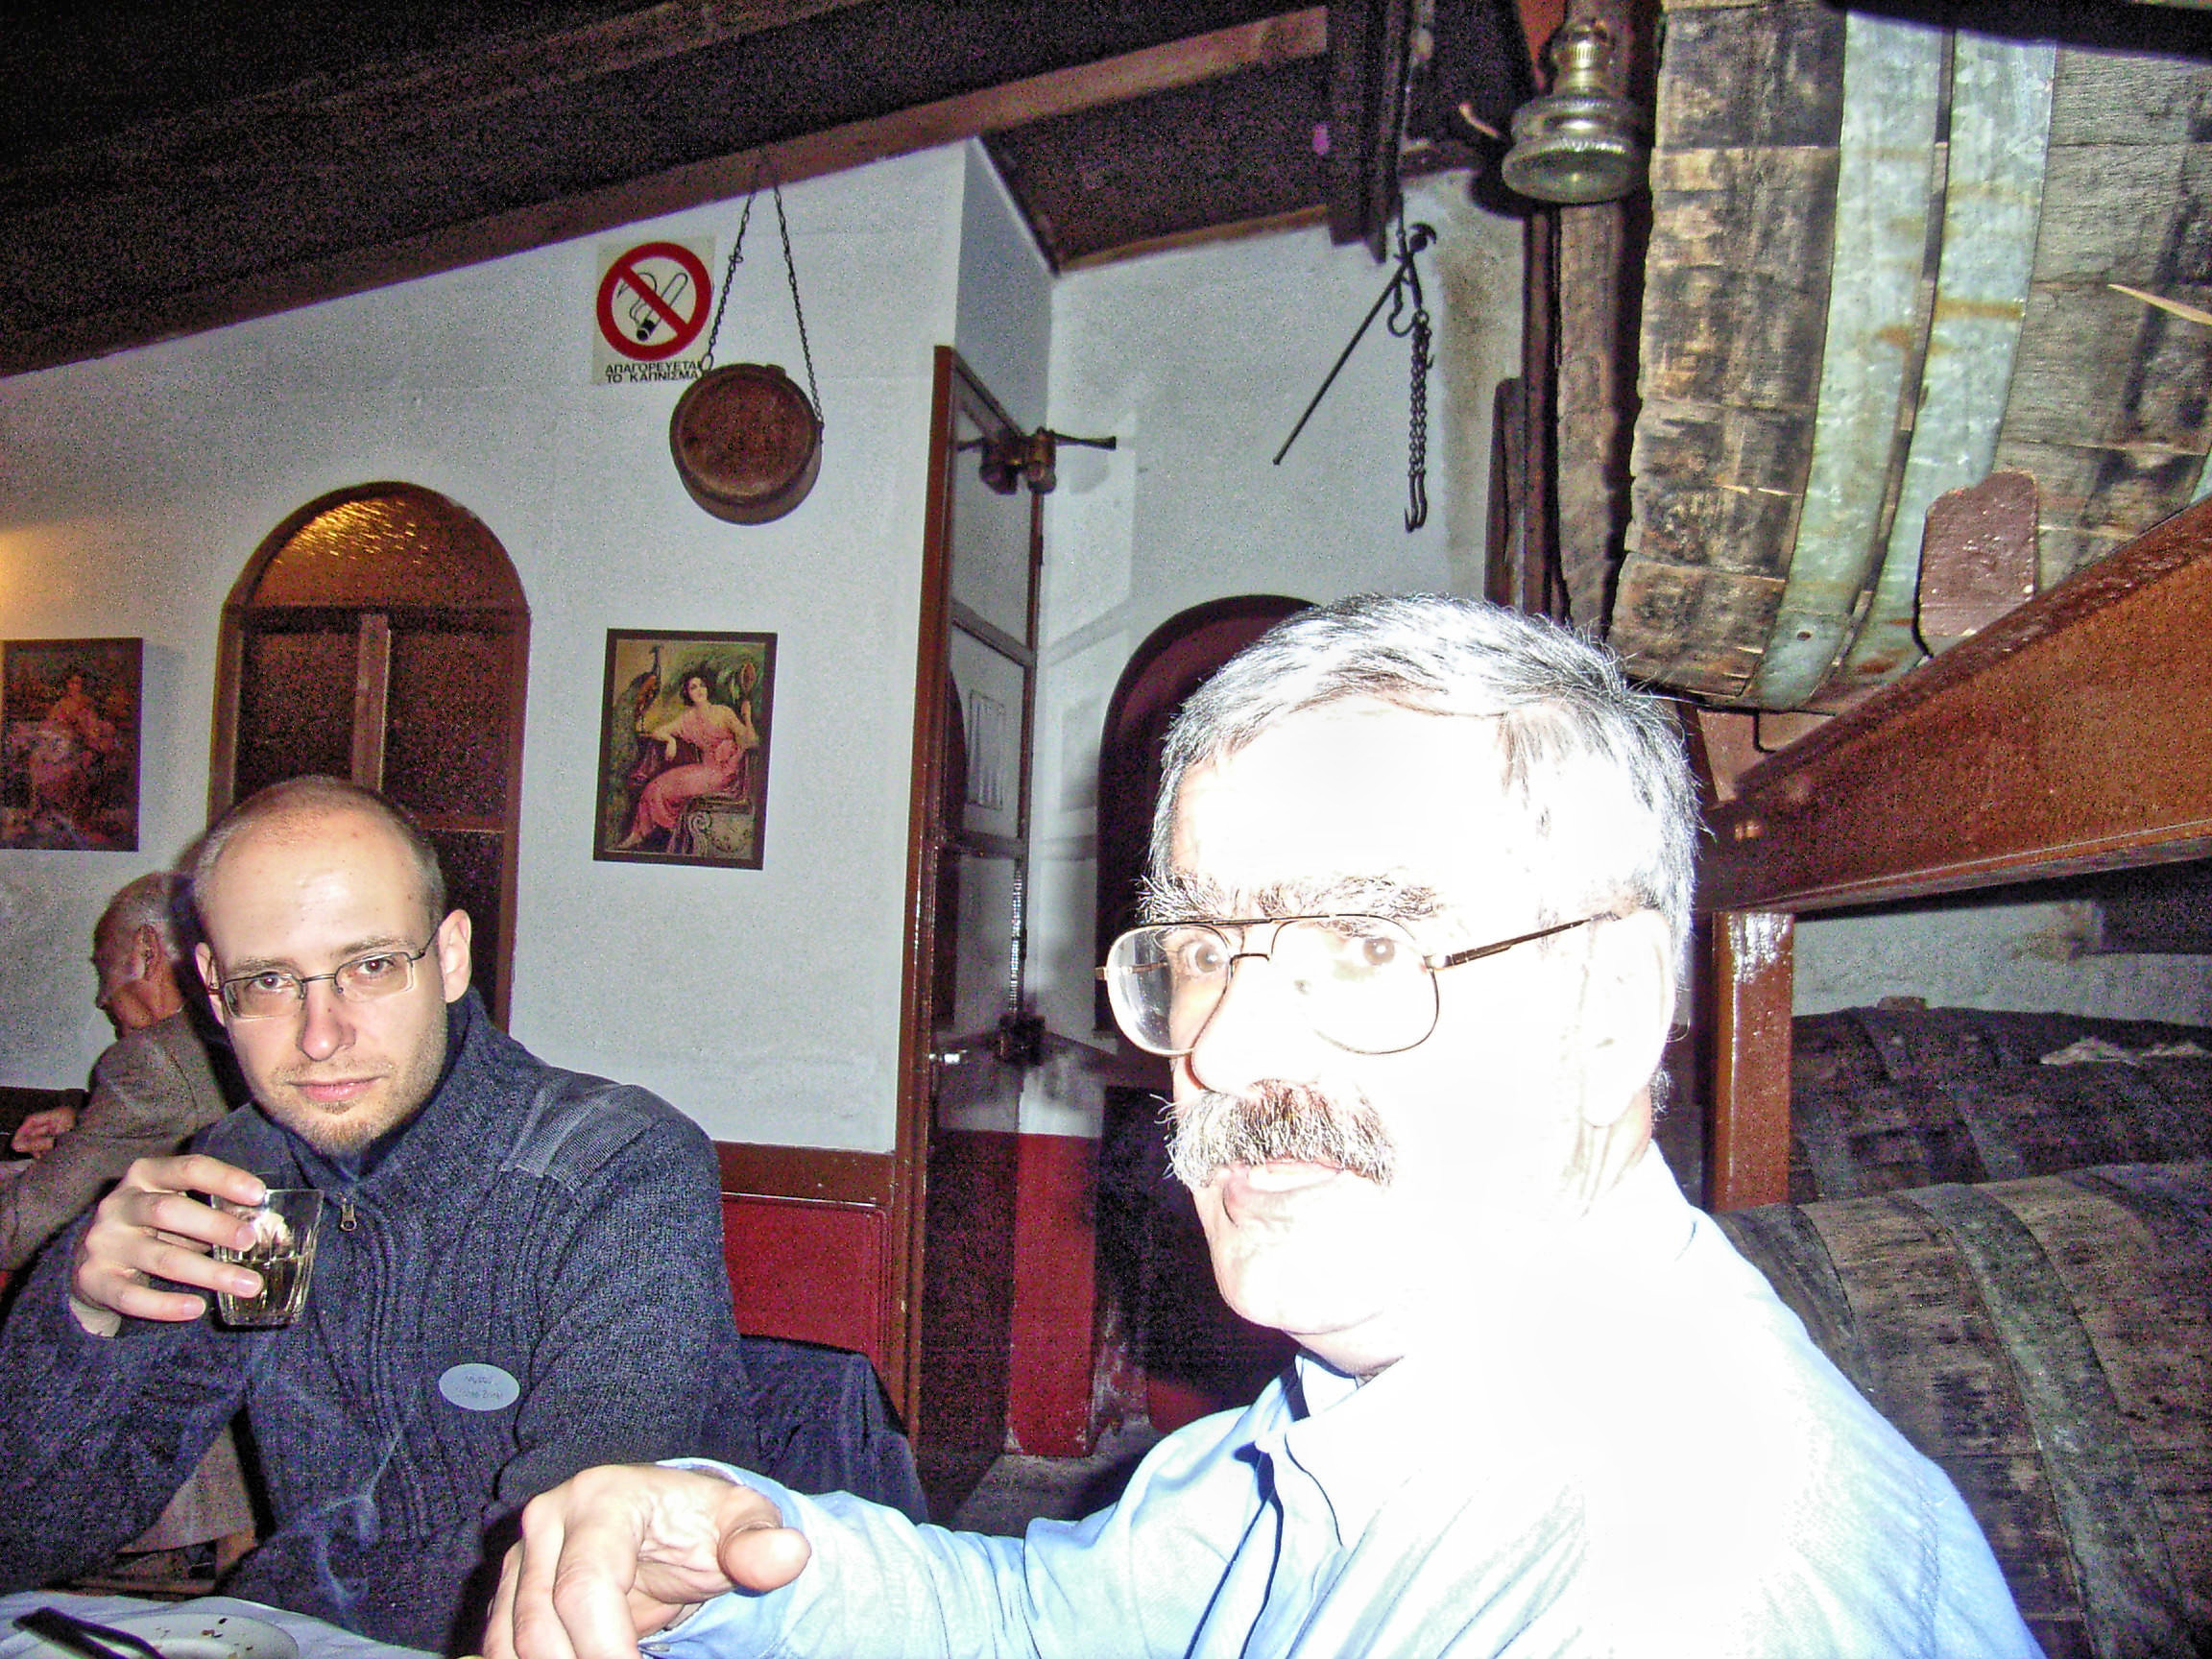 spiros-michael-peter-1.jpeg